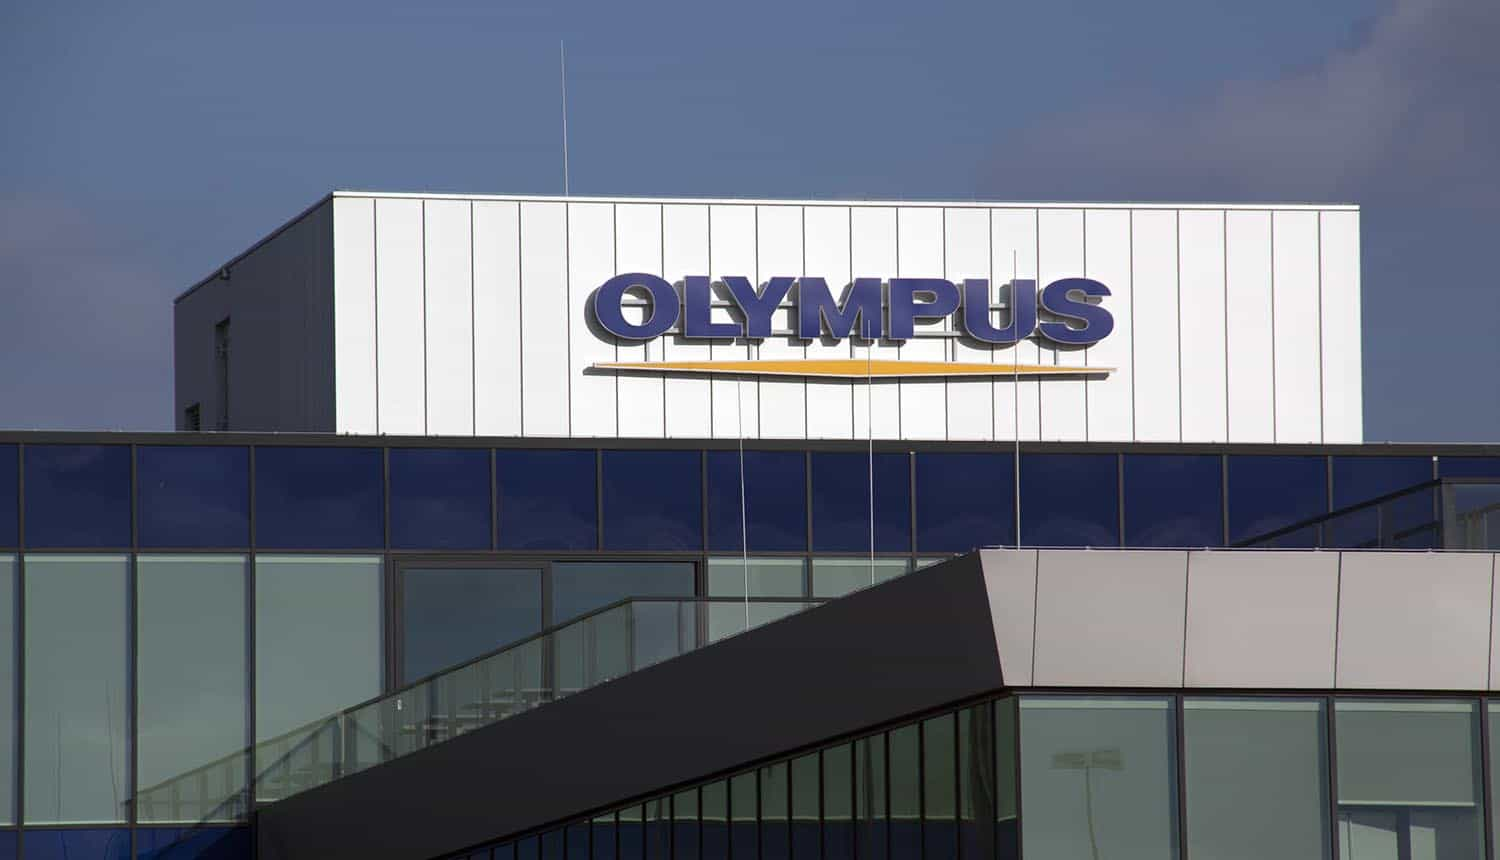 Olympus office building showing cyber attack and ransomware